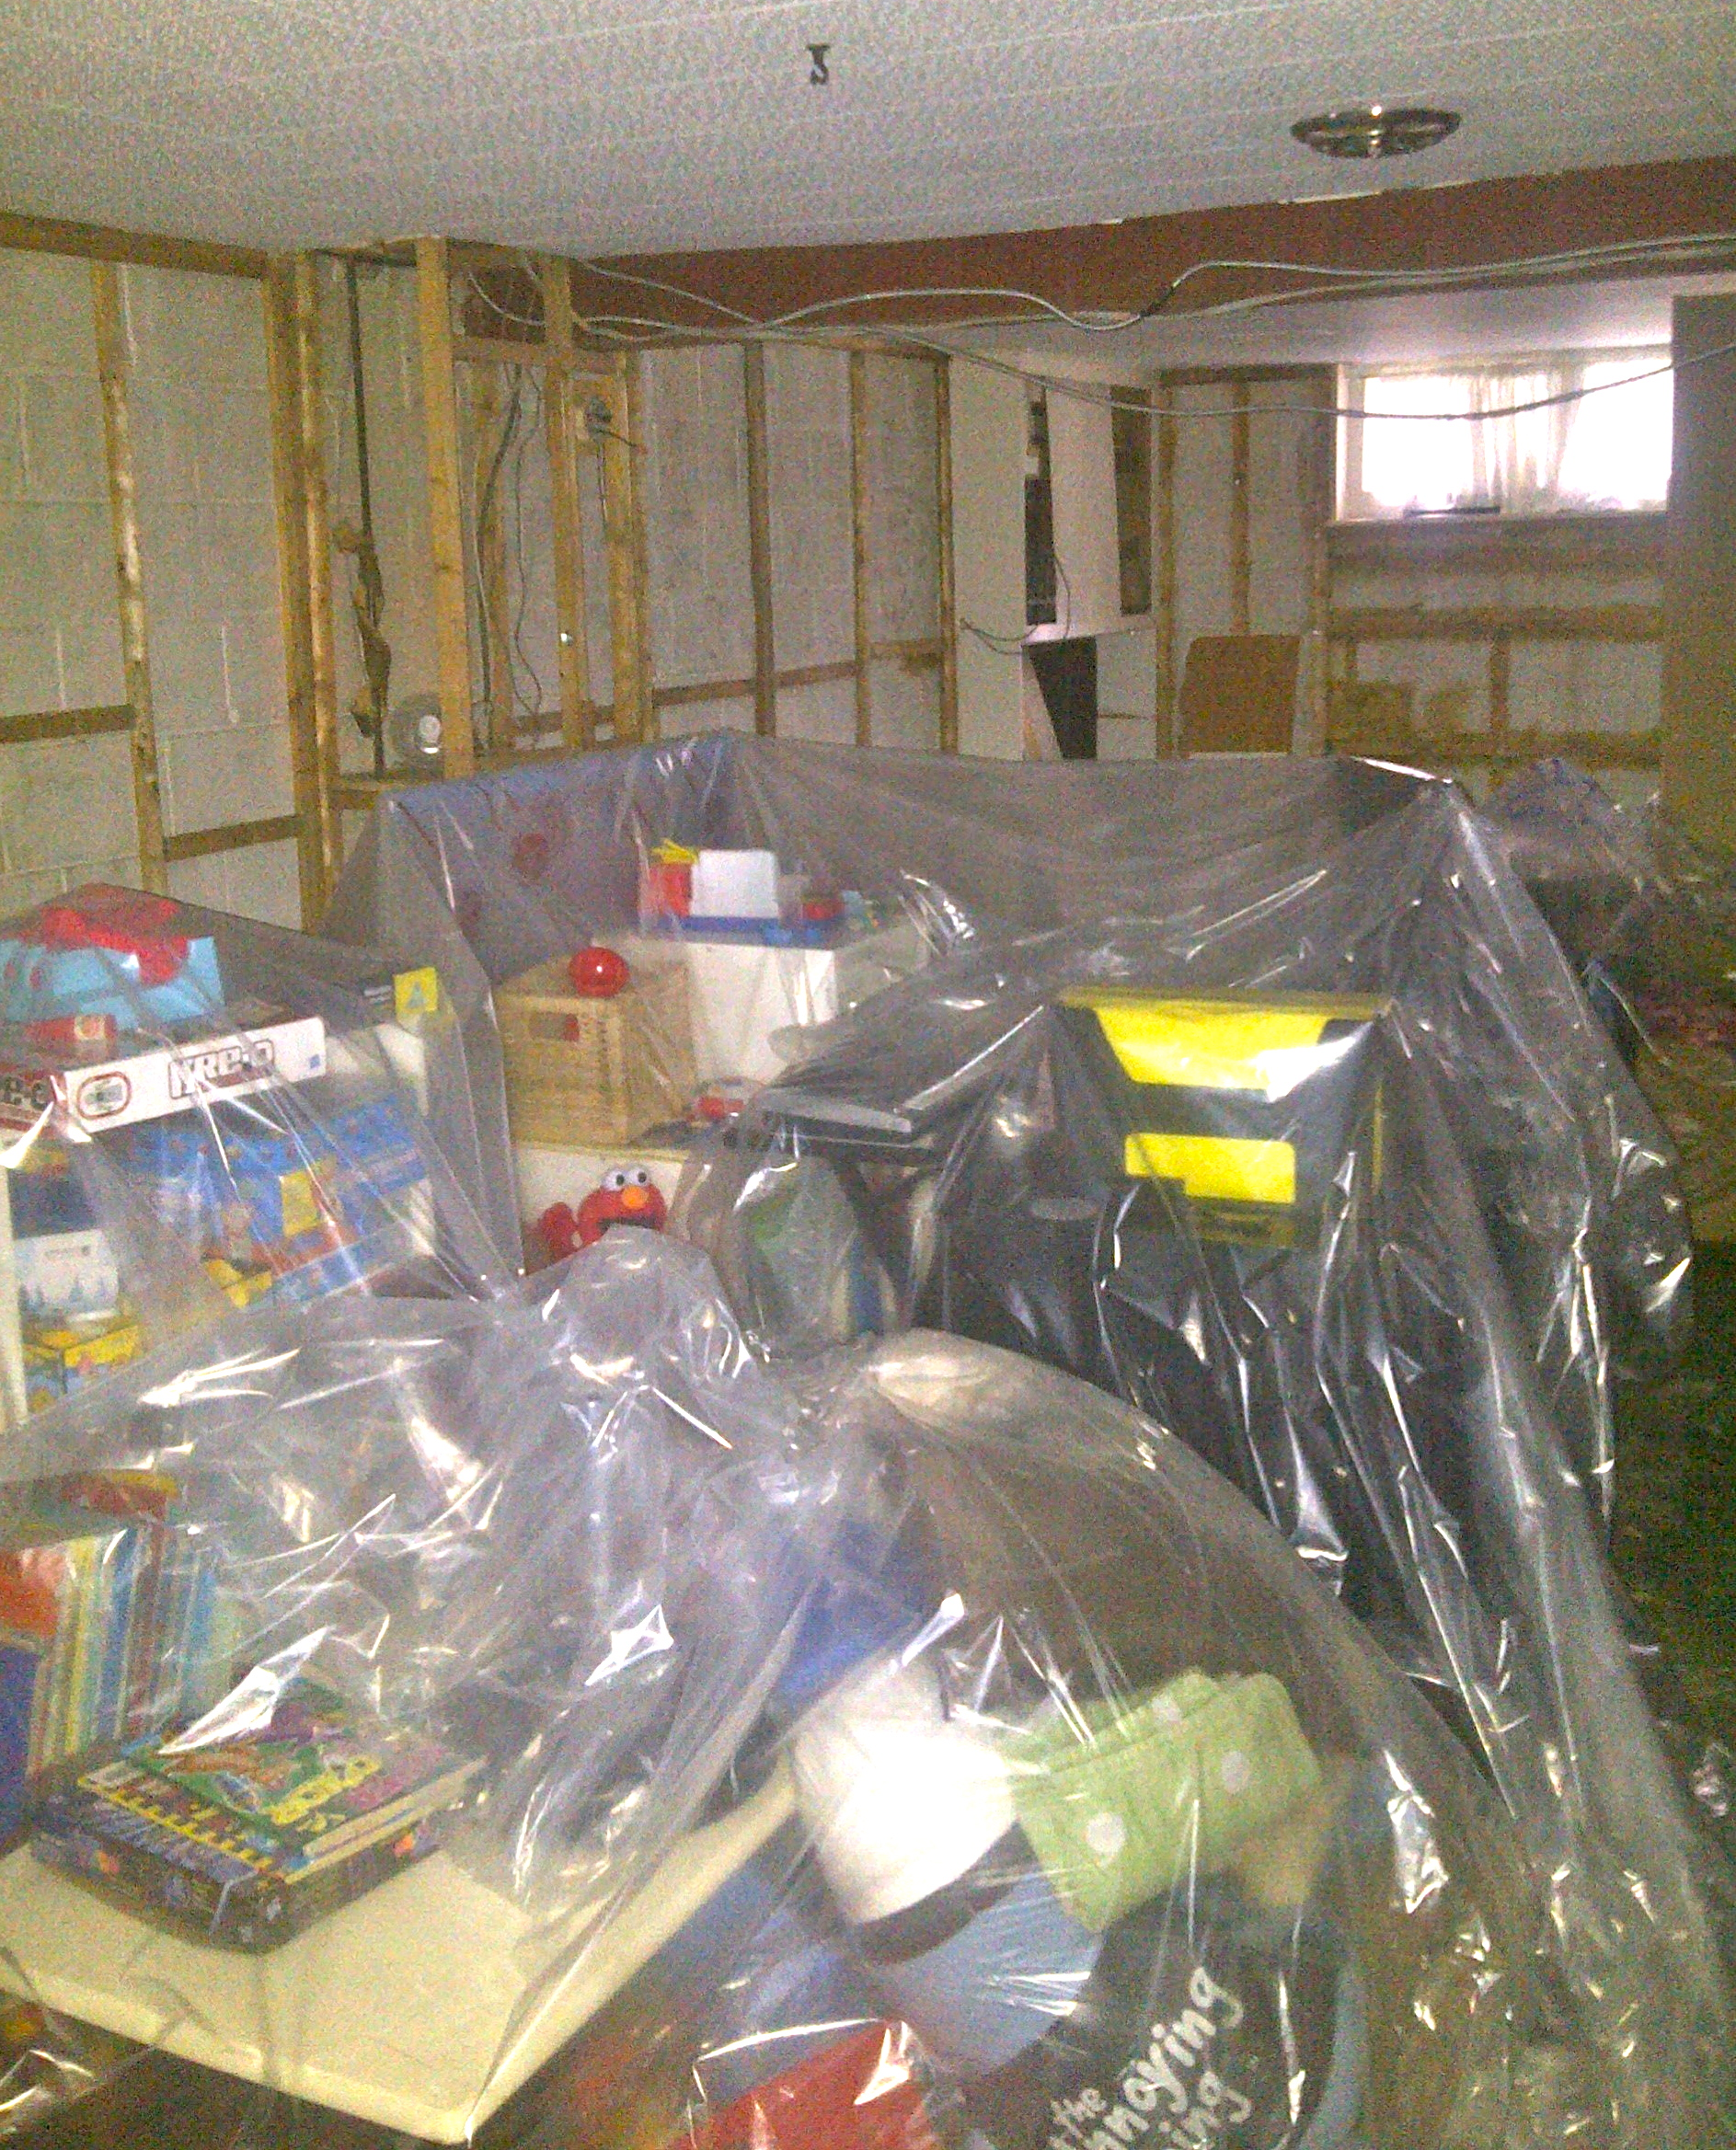 My Basement Is Flooding What Can I Do: Wanted: Flooding Answers - Birch Cliff News